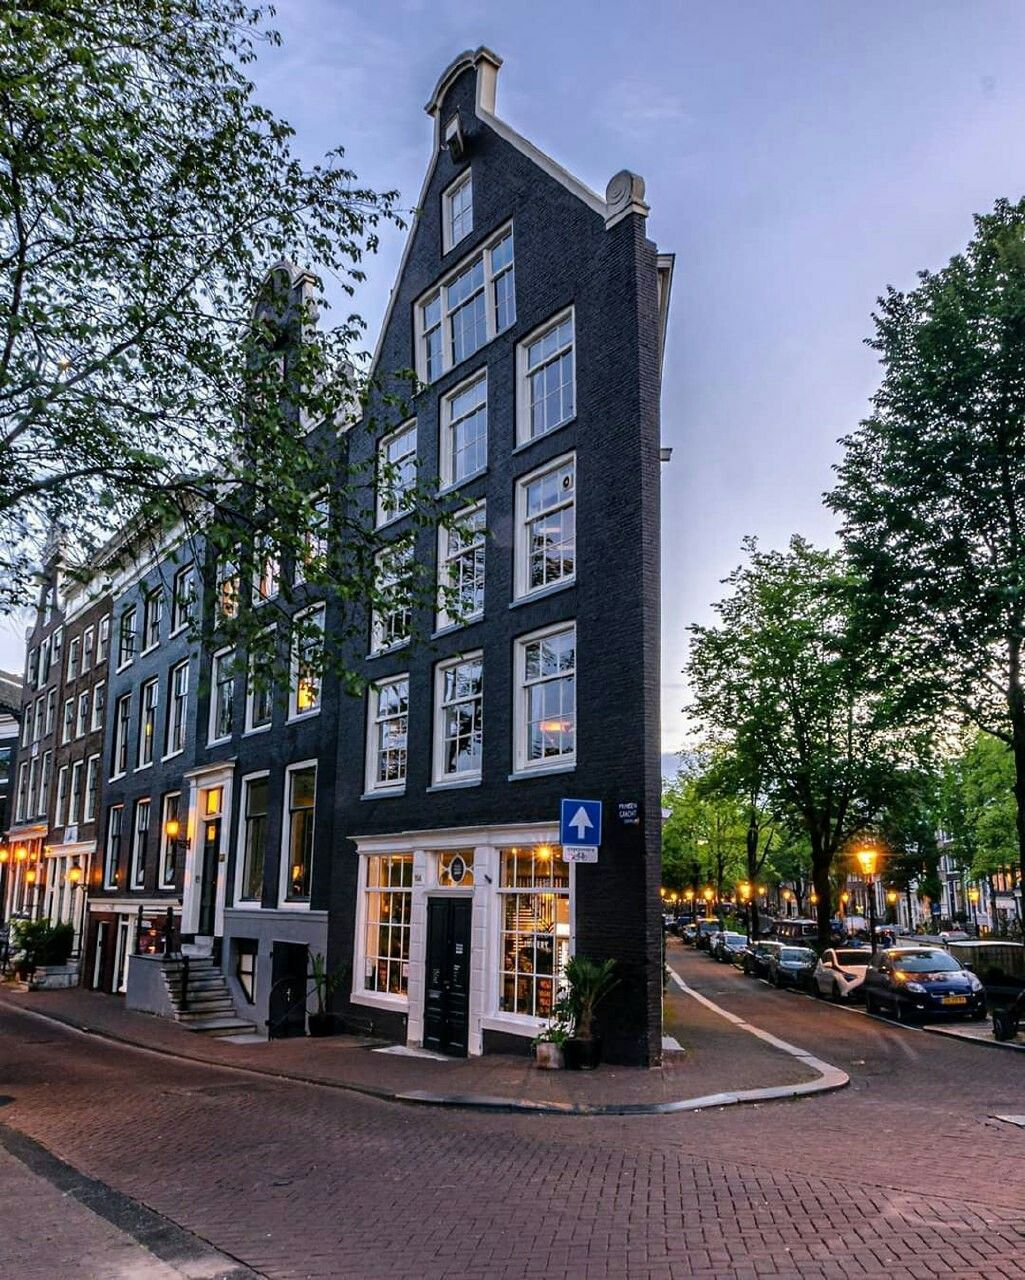 Amsterdam is the netherlands capital known for its